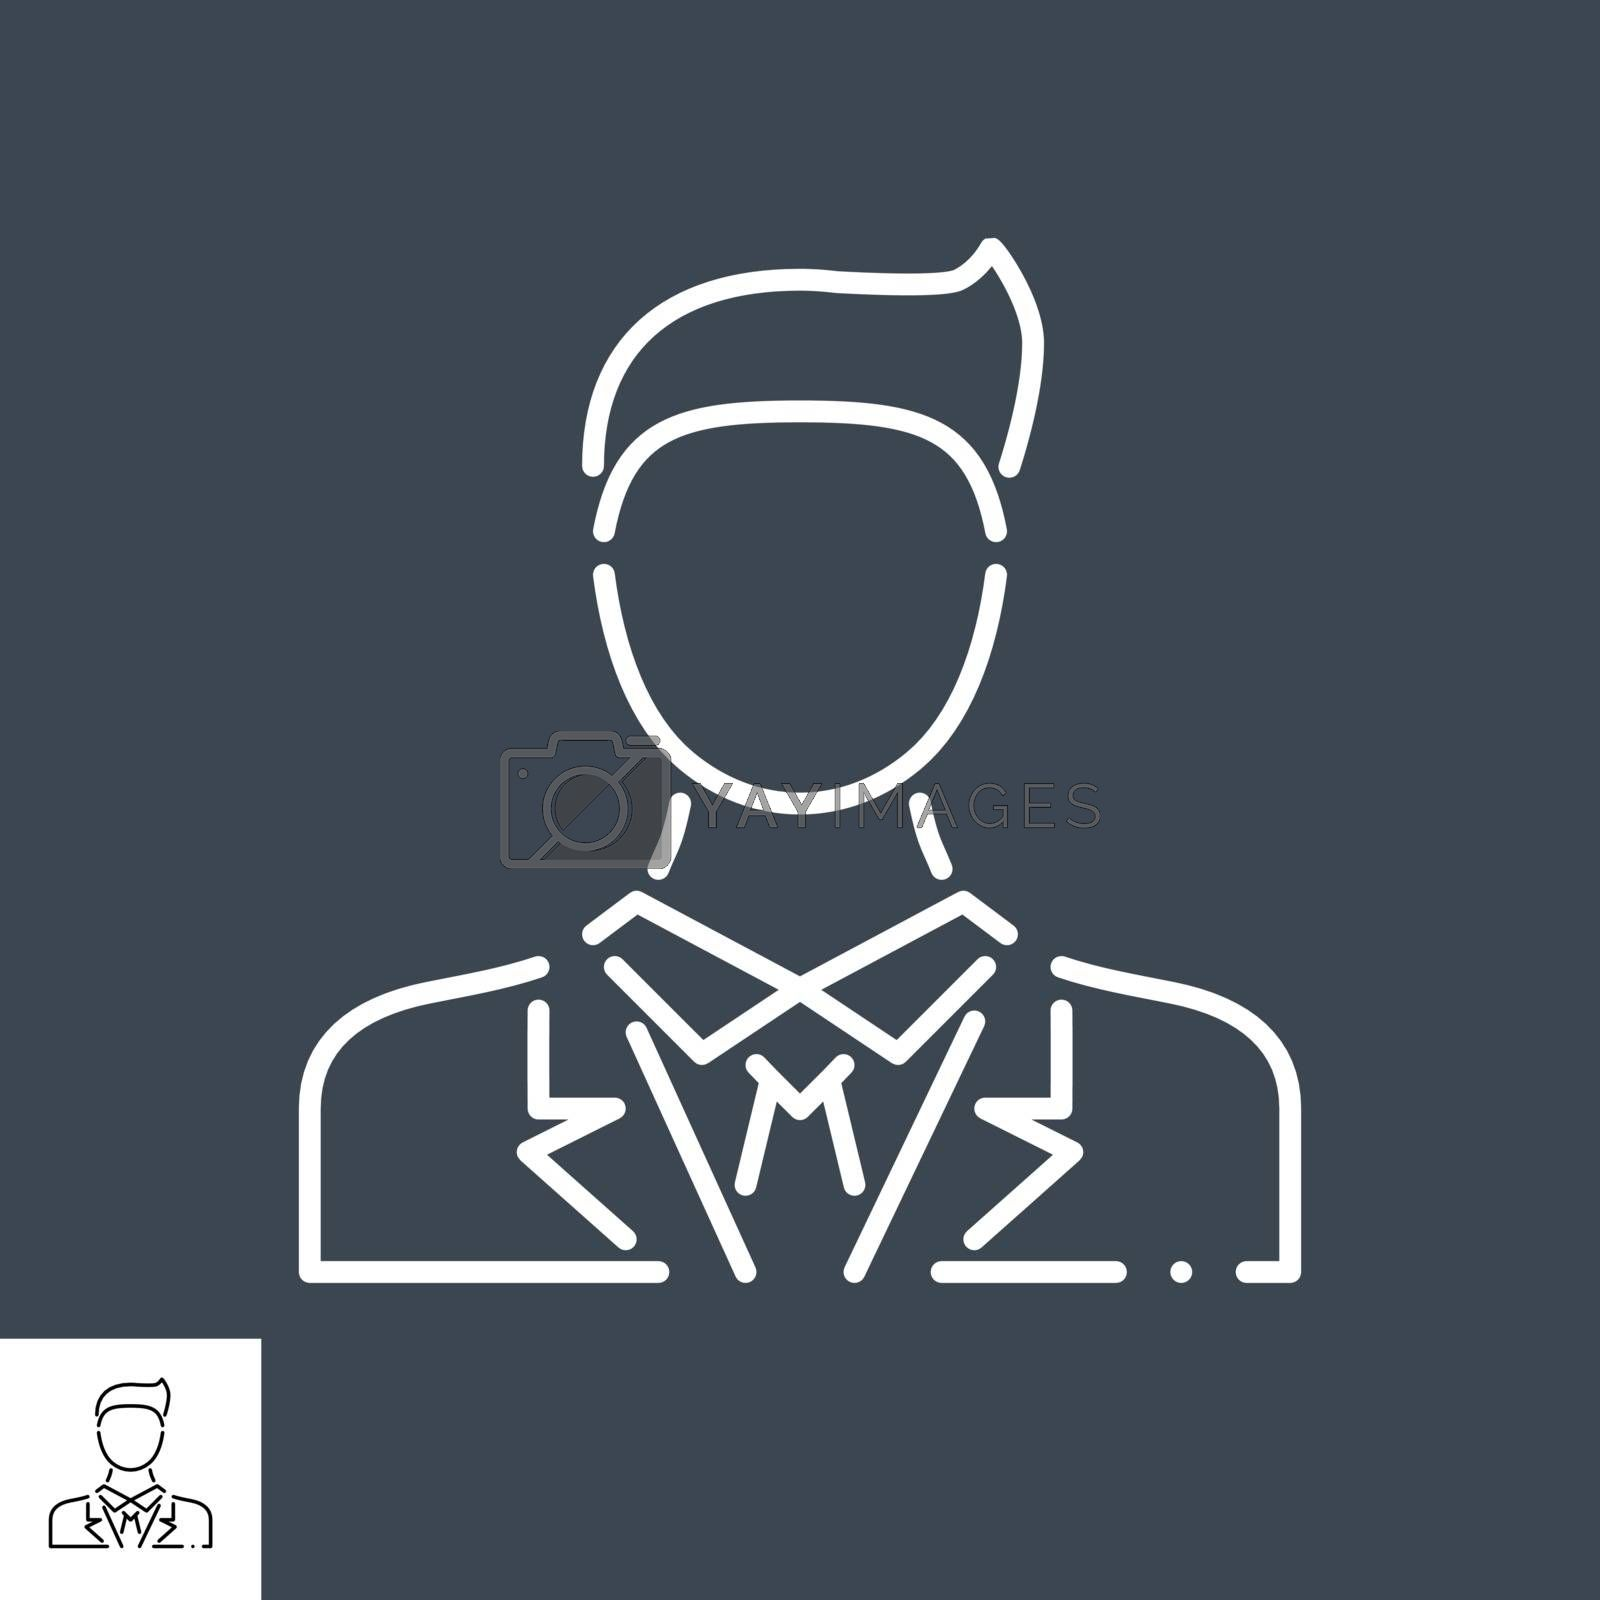 Businessman Related Vector Line Icon. Isolated on Black Background. Editable Stroke.